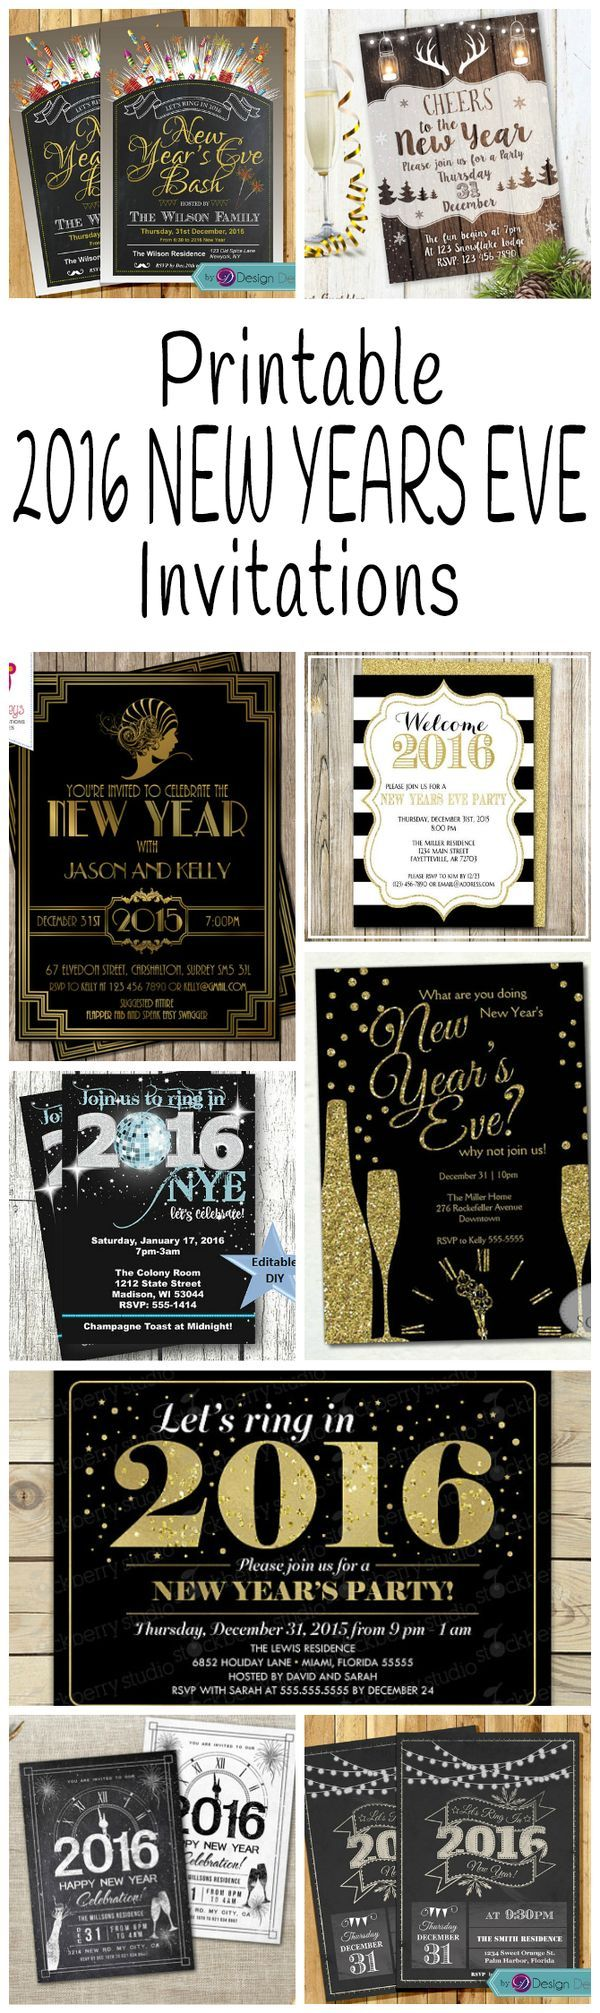 Best 25+ New years eve nyc ideas on Pinterest | New year new york ...